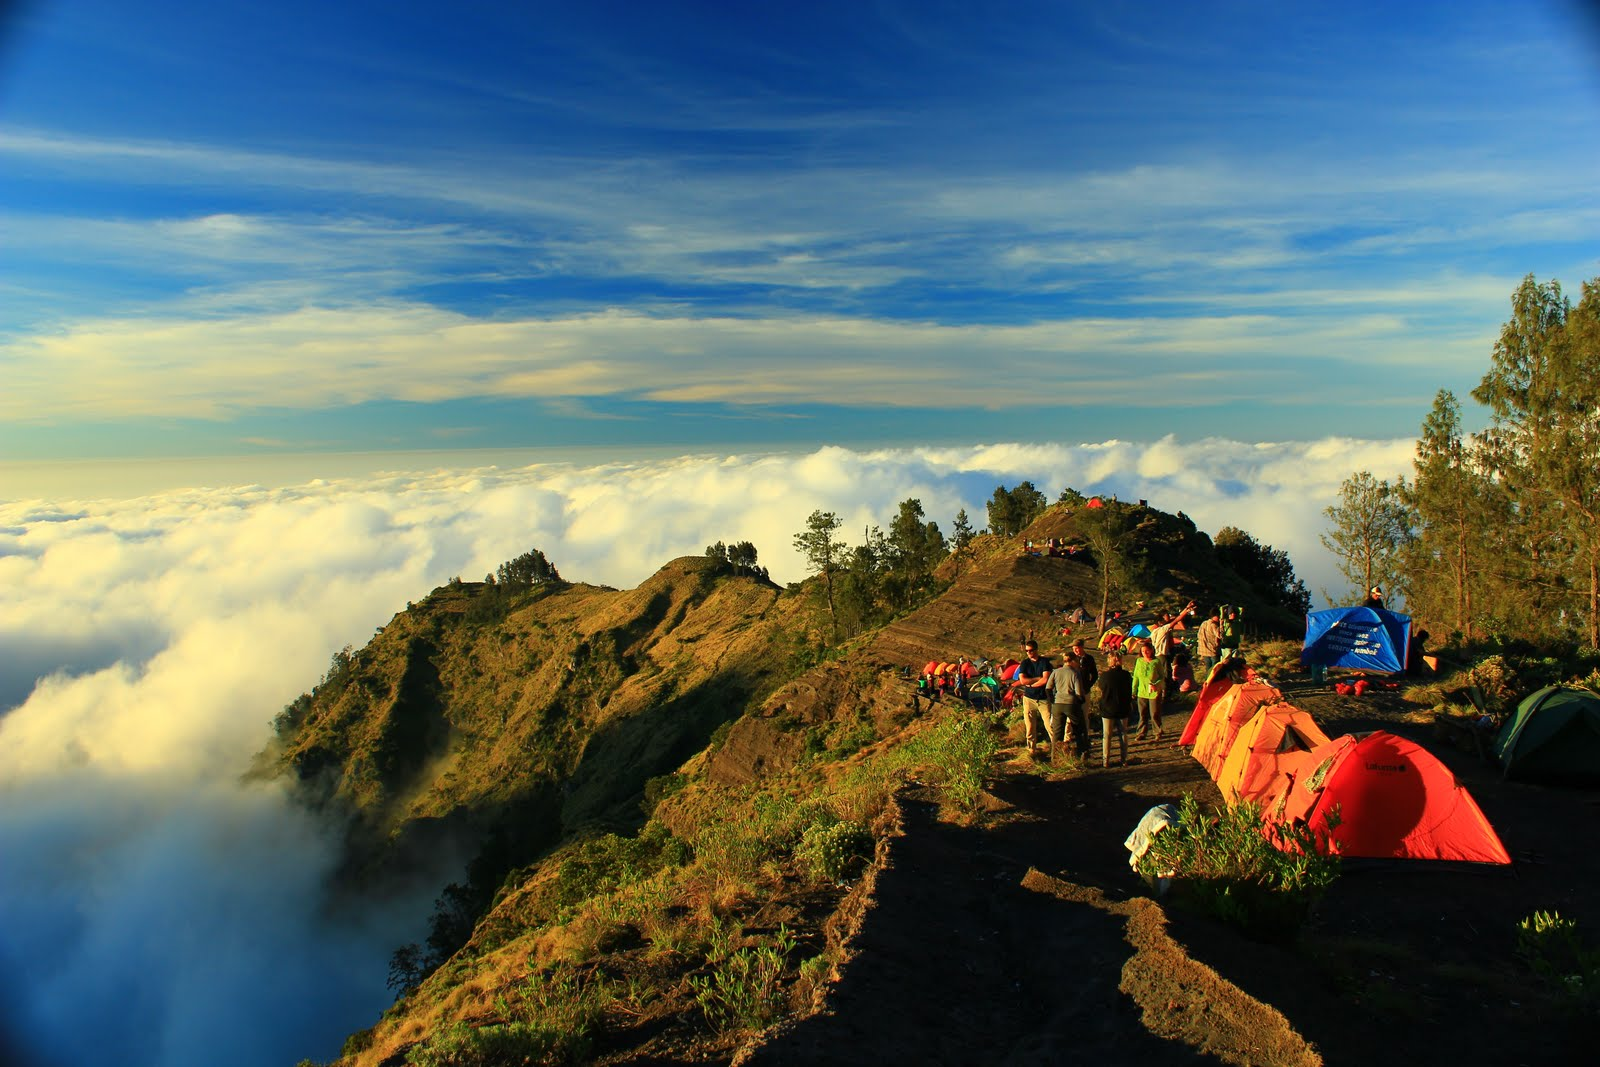 Is Most Beautiful Scenery In The World Gunung Rinjani National